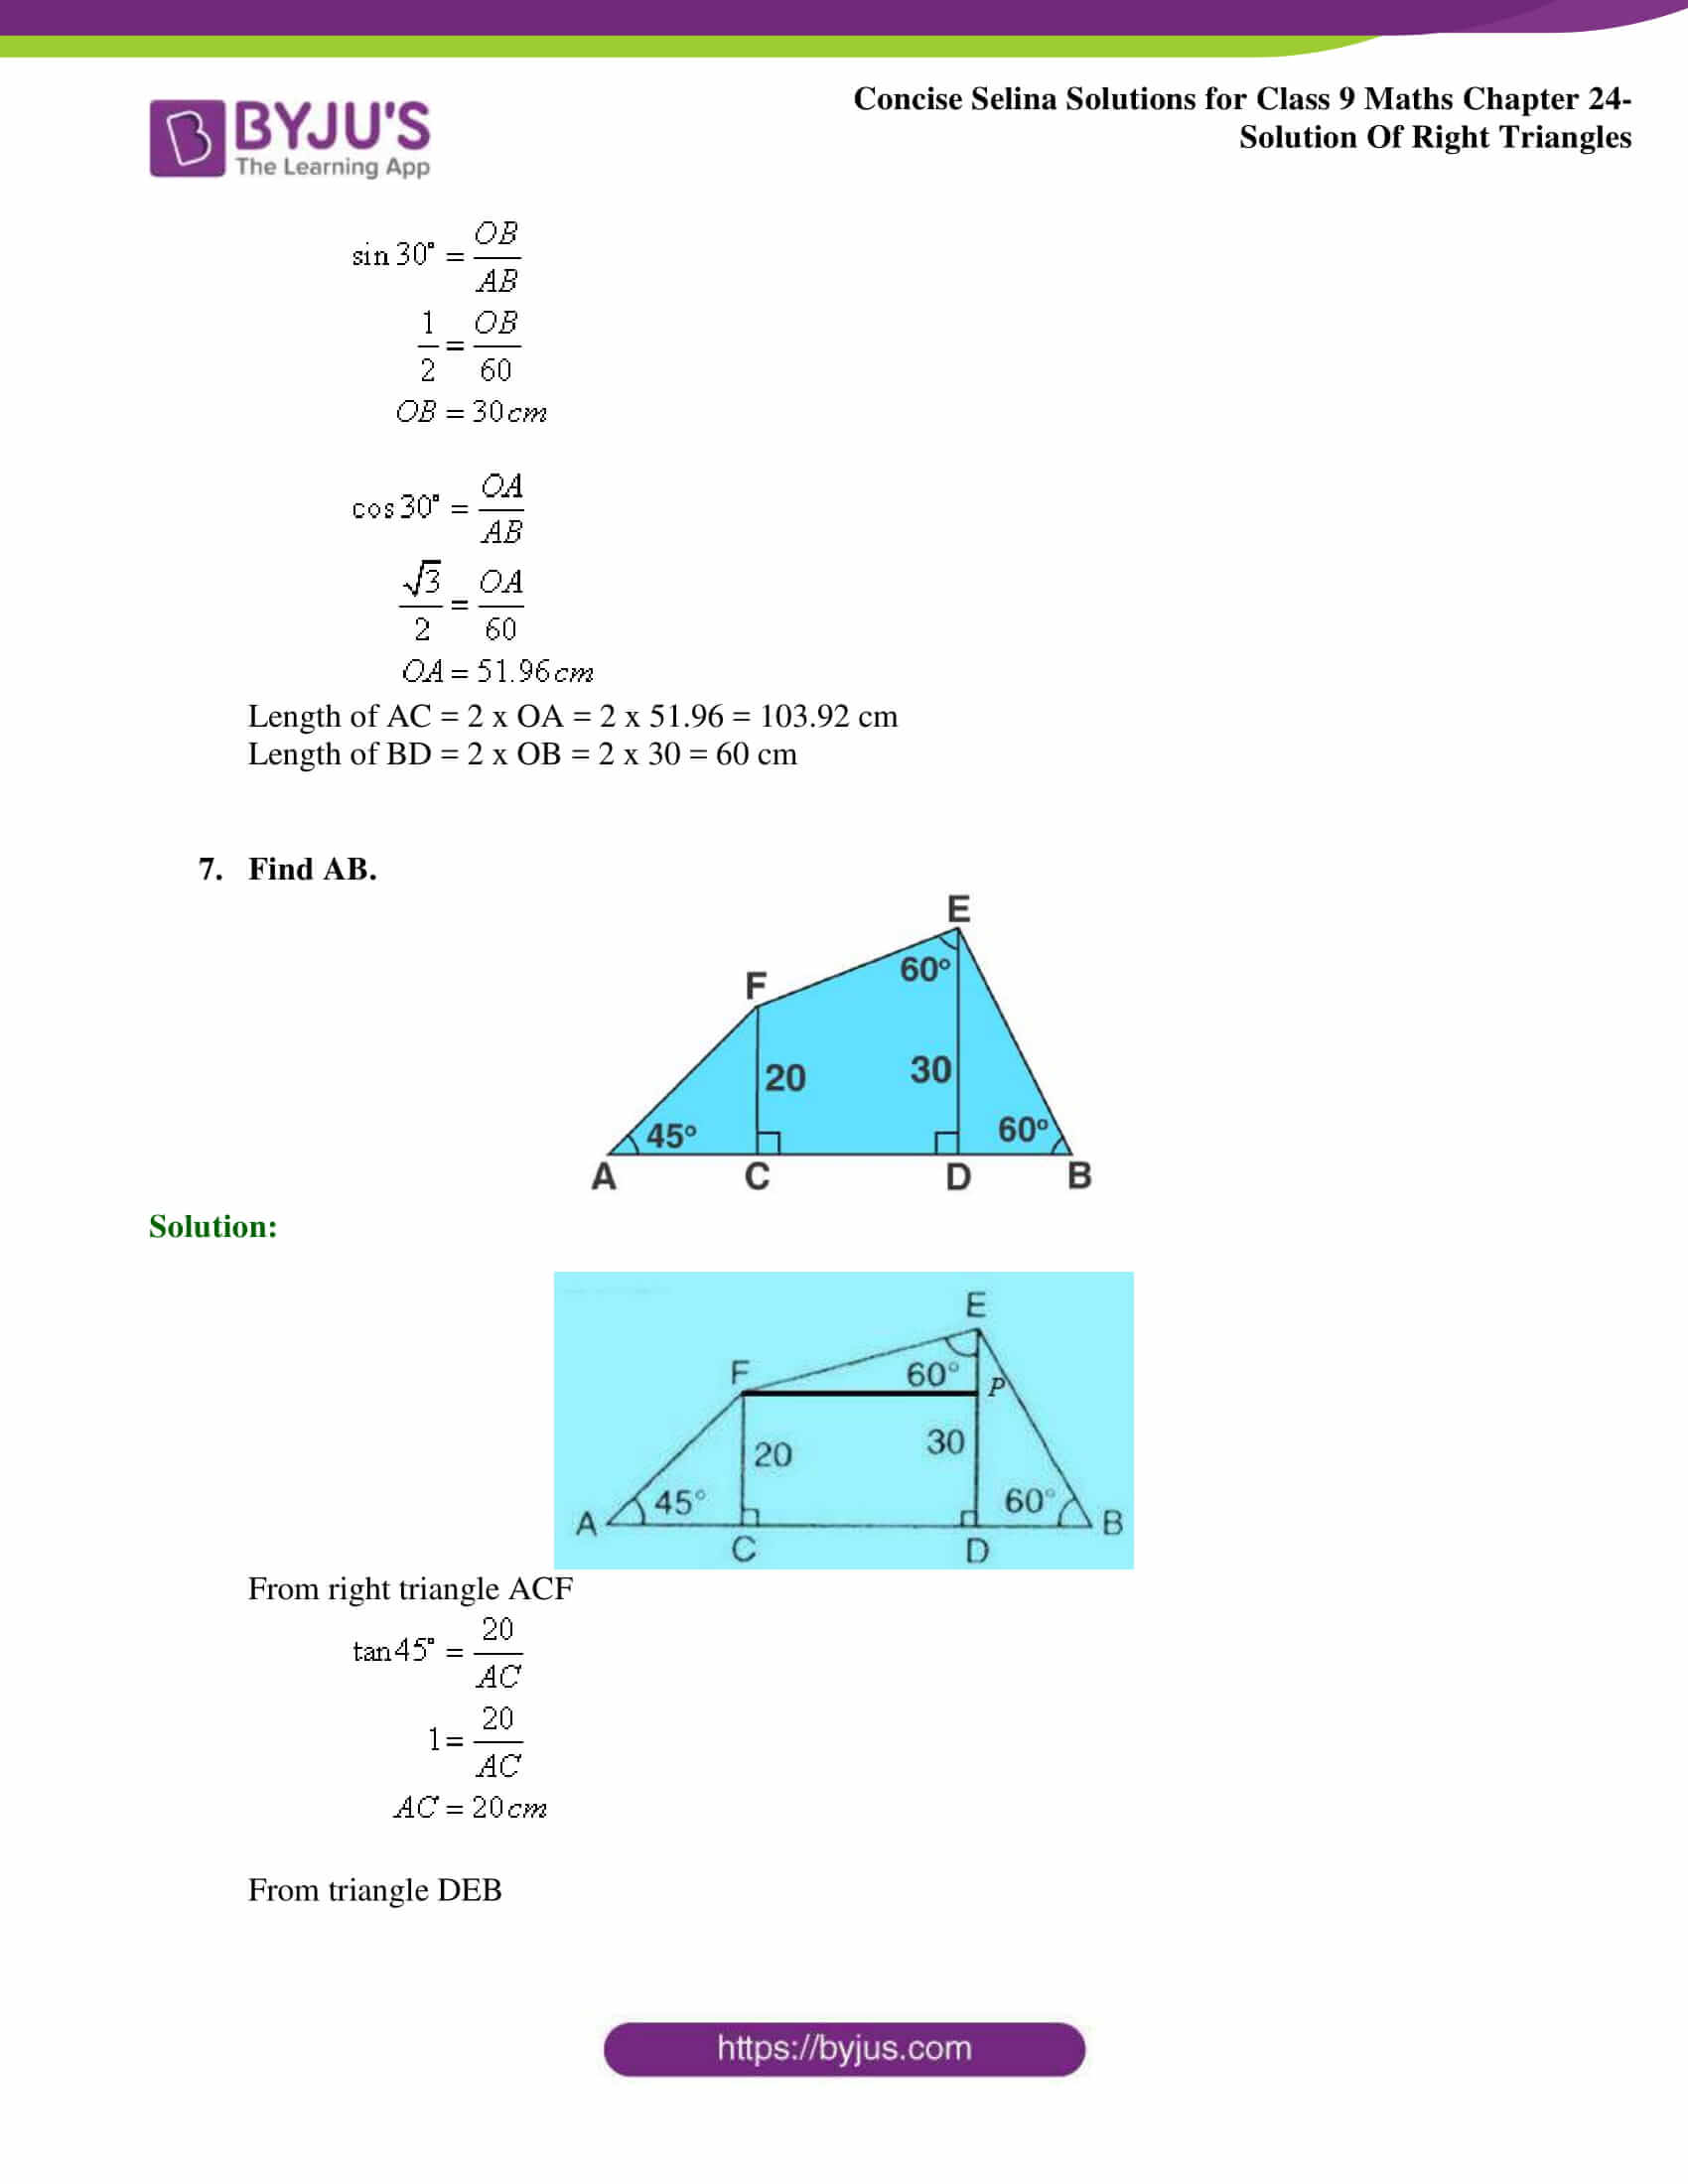 Concise Selina Solutions Class 9 Maths Chapter 24 Solution Of Right Triangles part 08